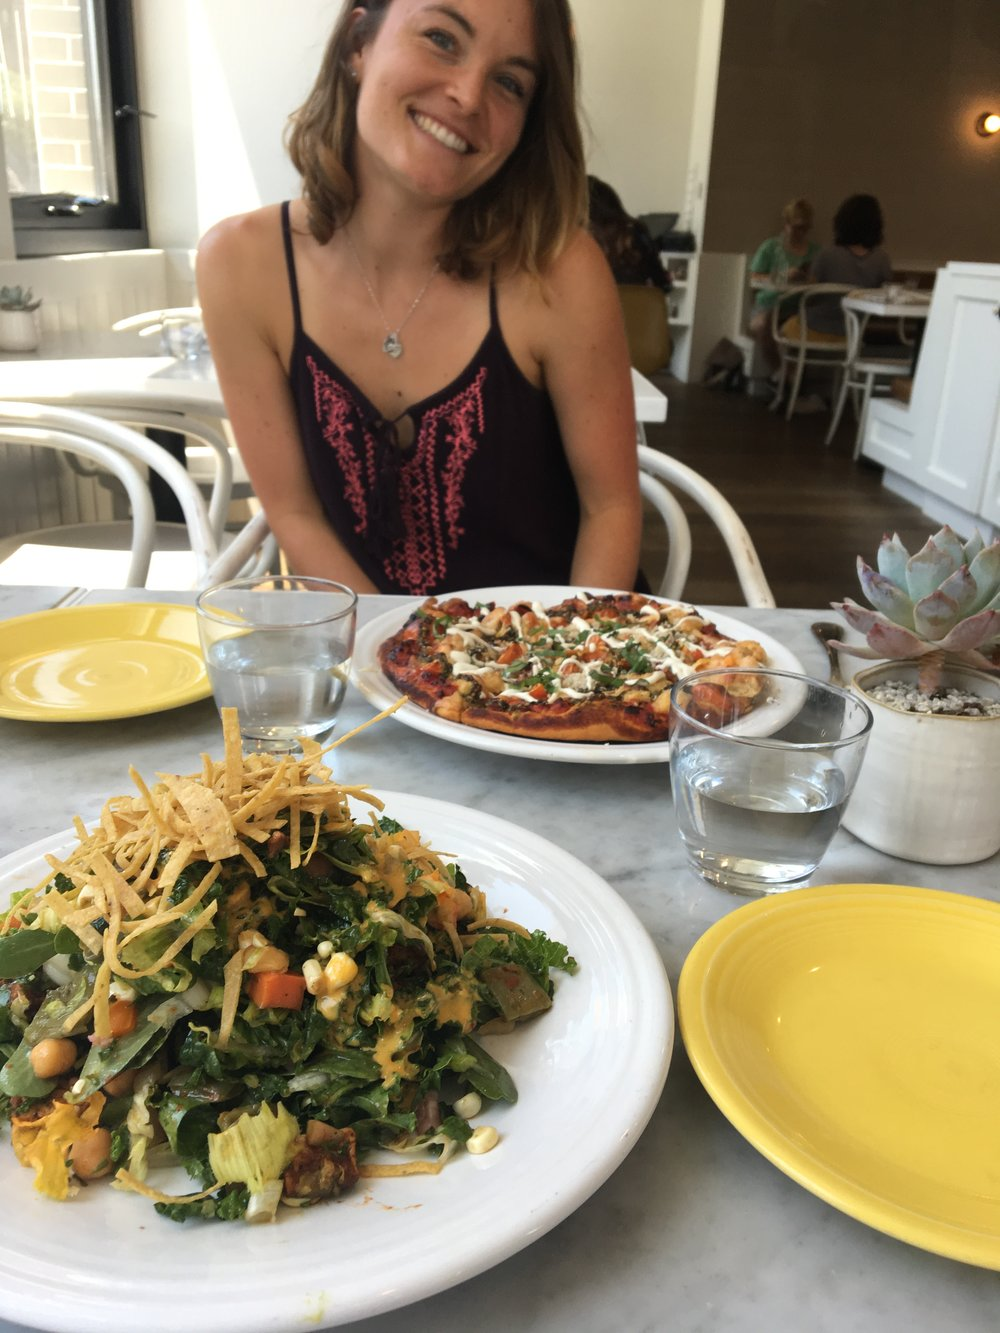 Cafe Gratitude: I Am Local Salad + I Am Giving Chef's Seasonal Pizza